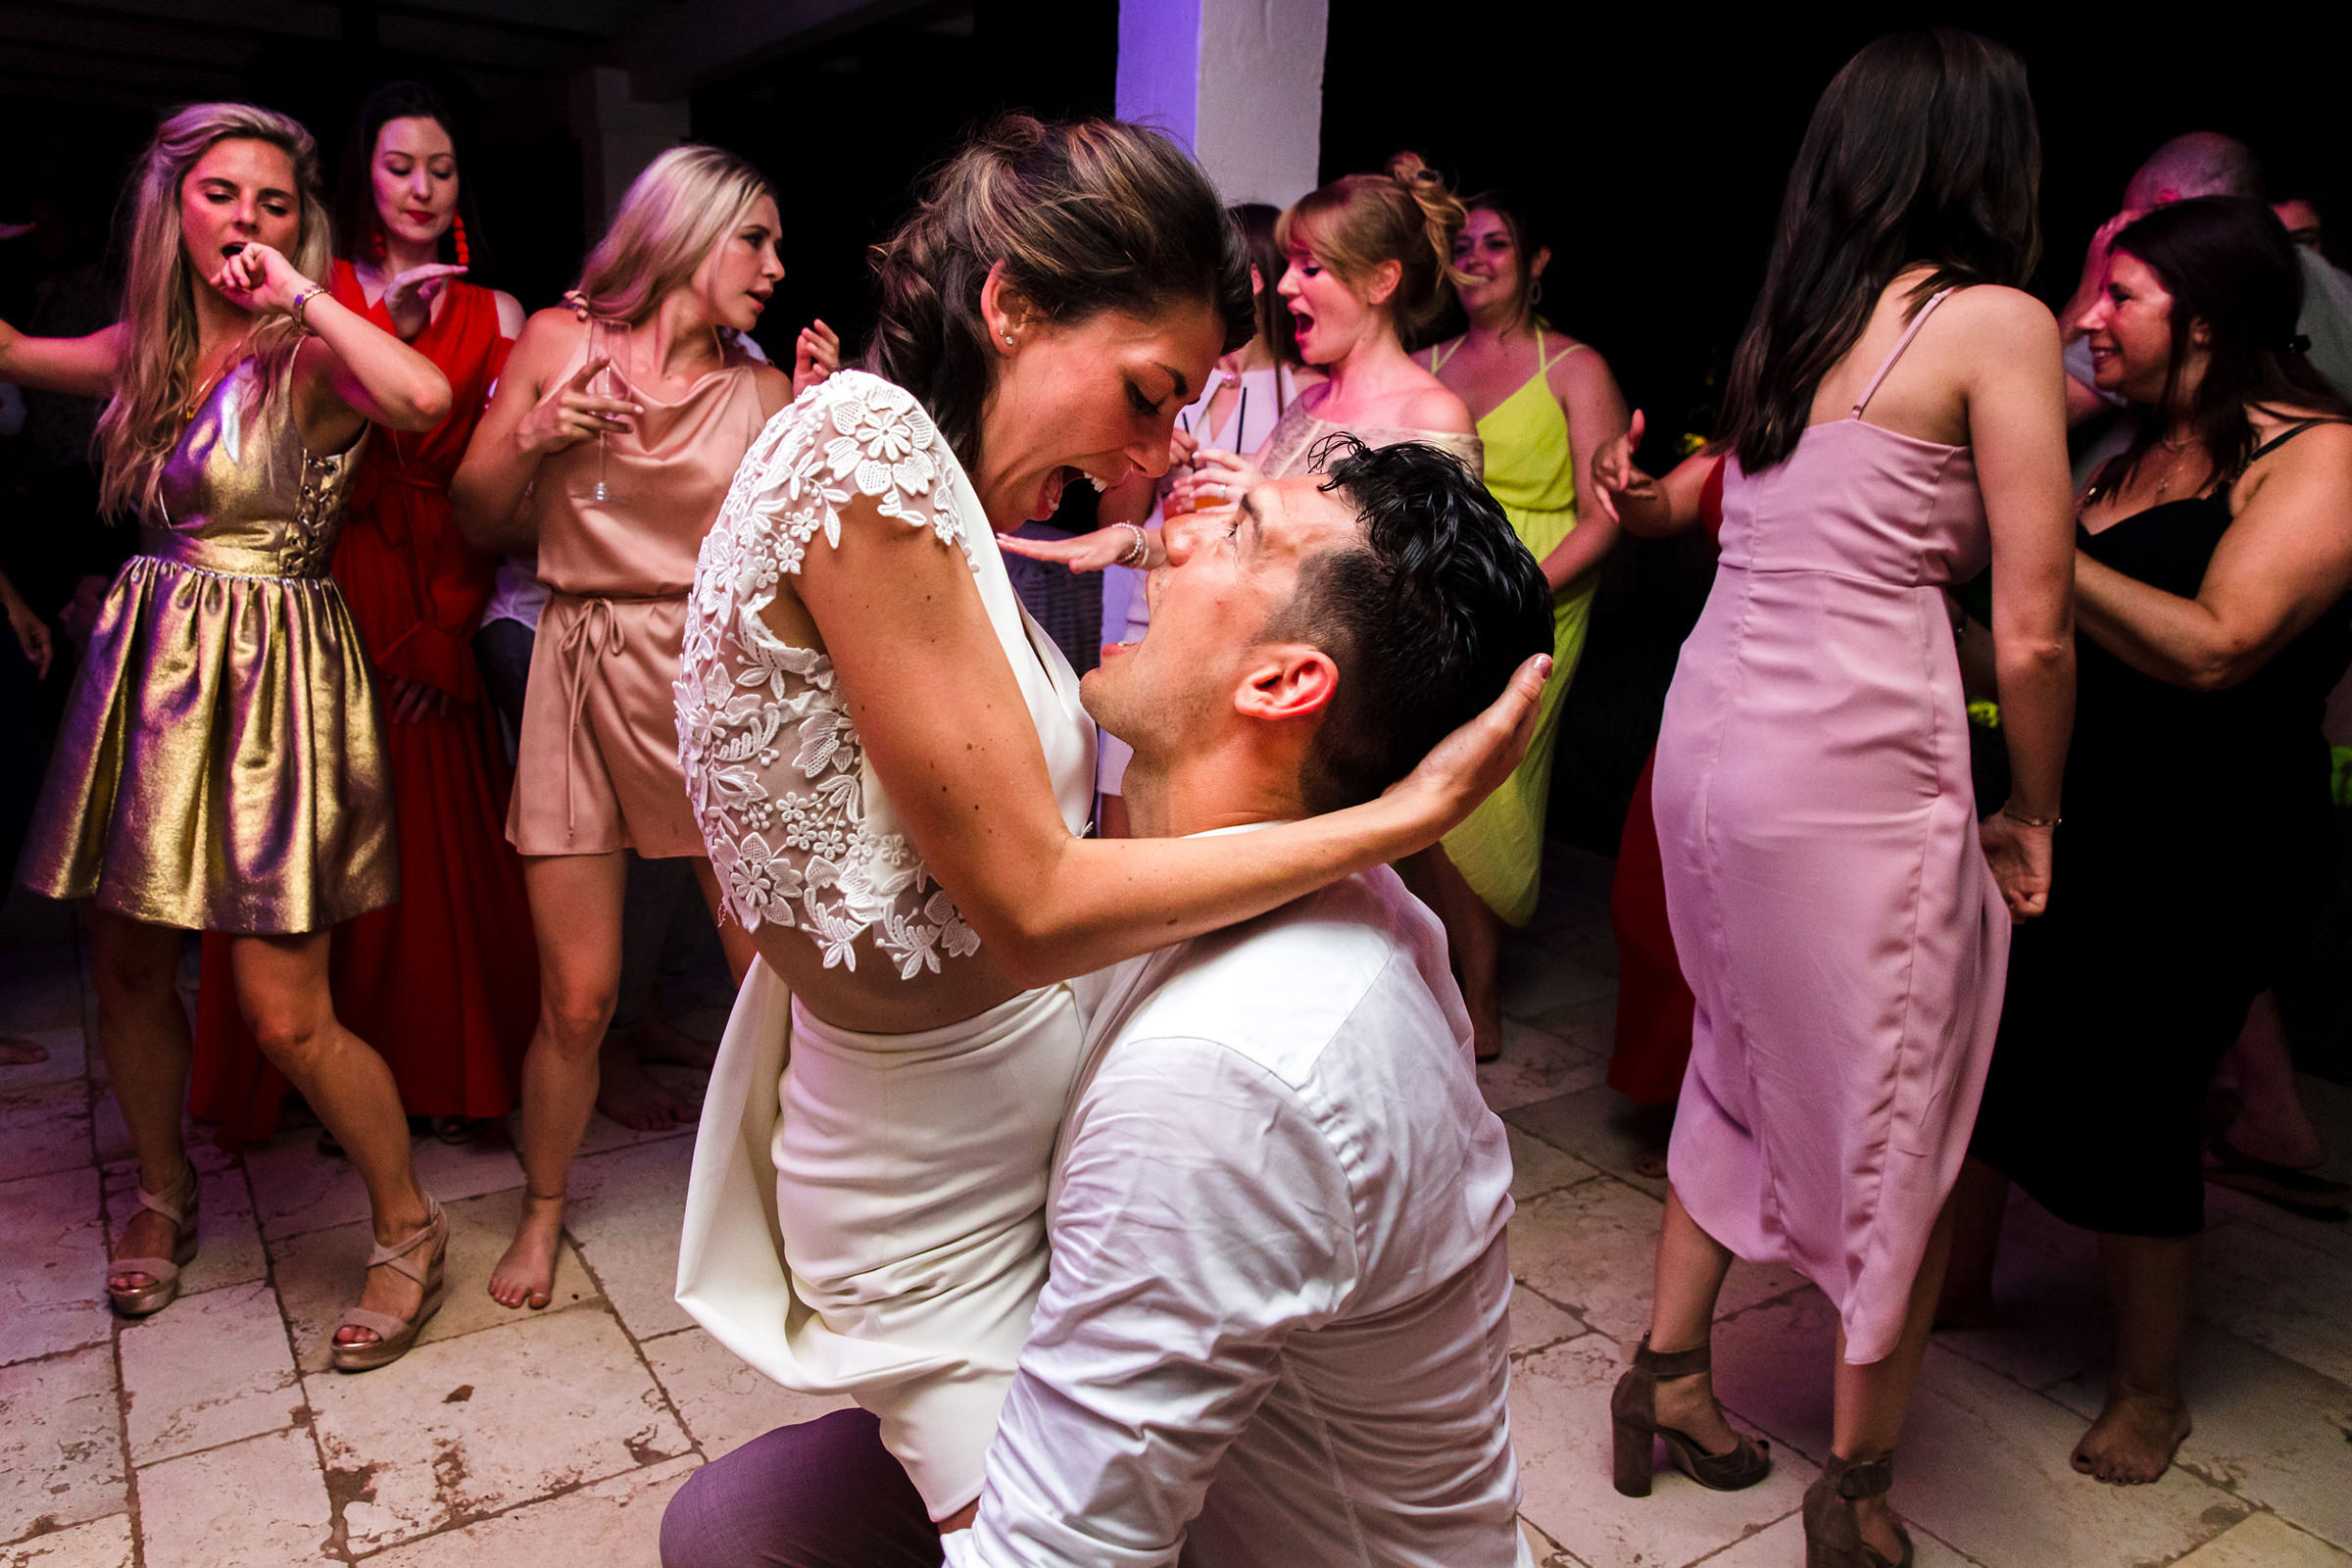 Bride and groom embrace on dancefloor, photo by Philippe Swiggers